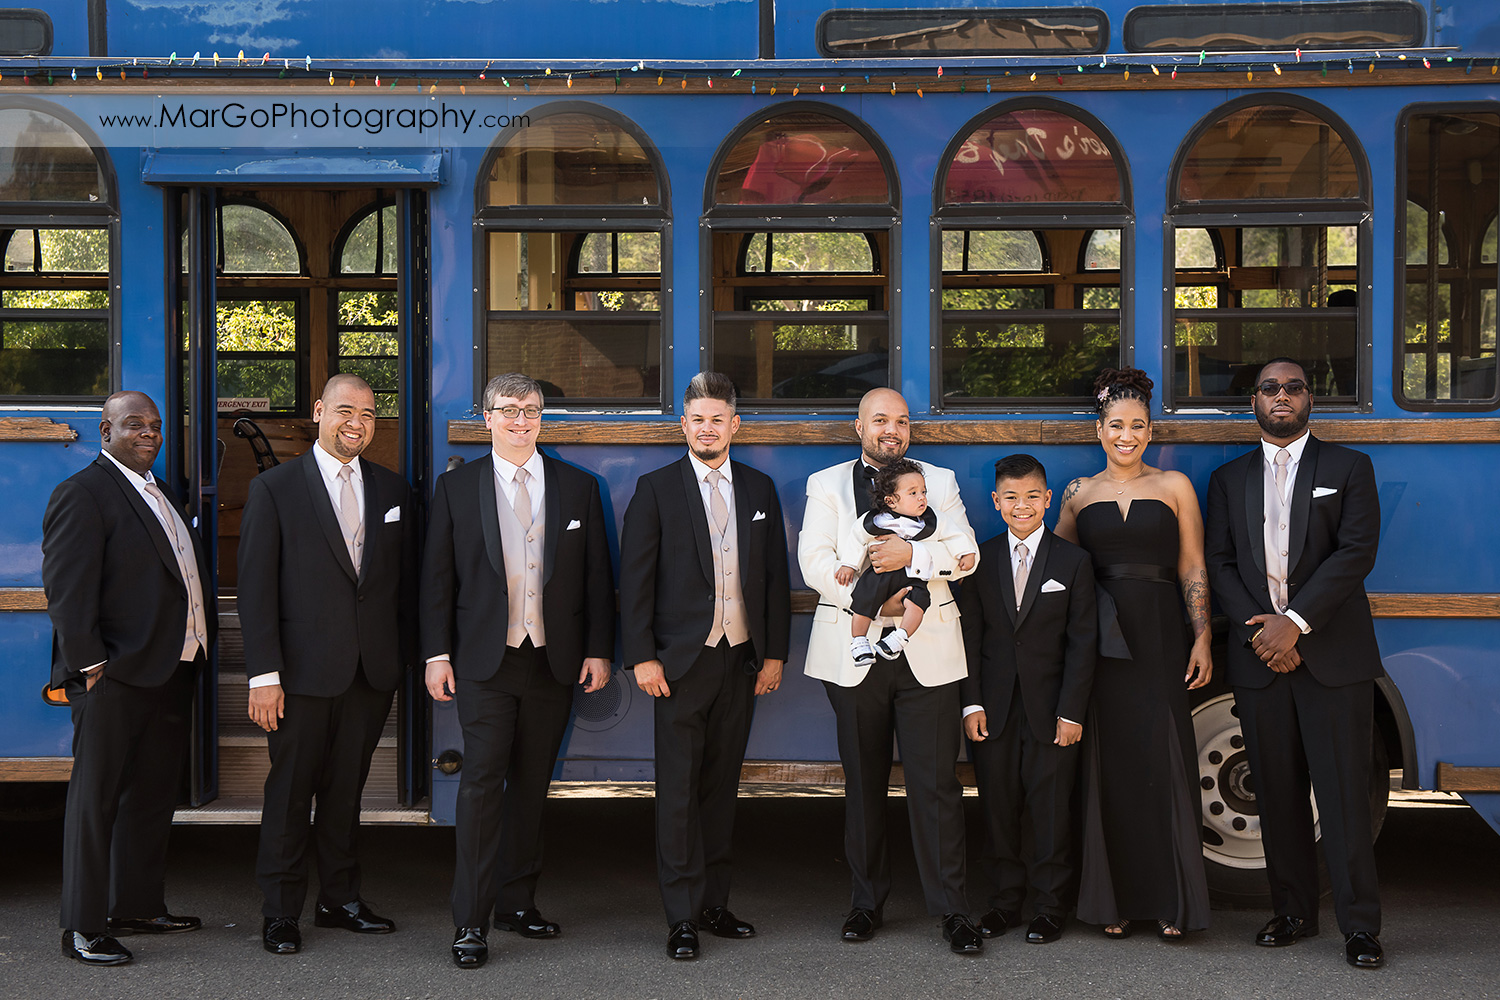 groom and groomsmen in front of blue tram at Sunol's Casa Bella